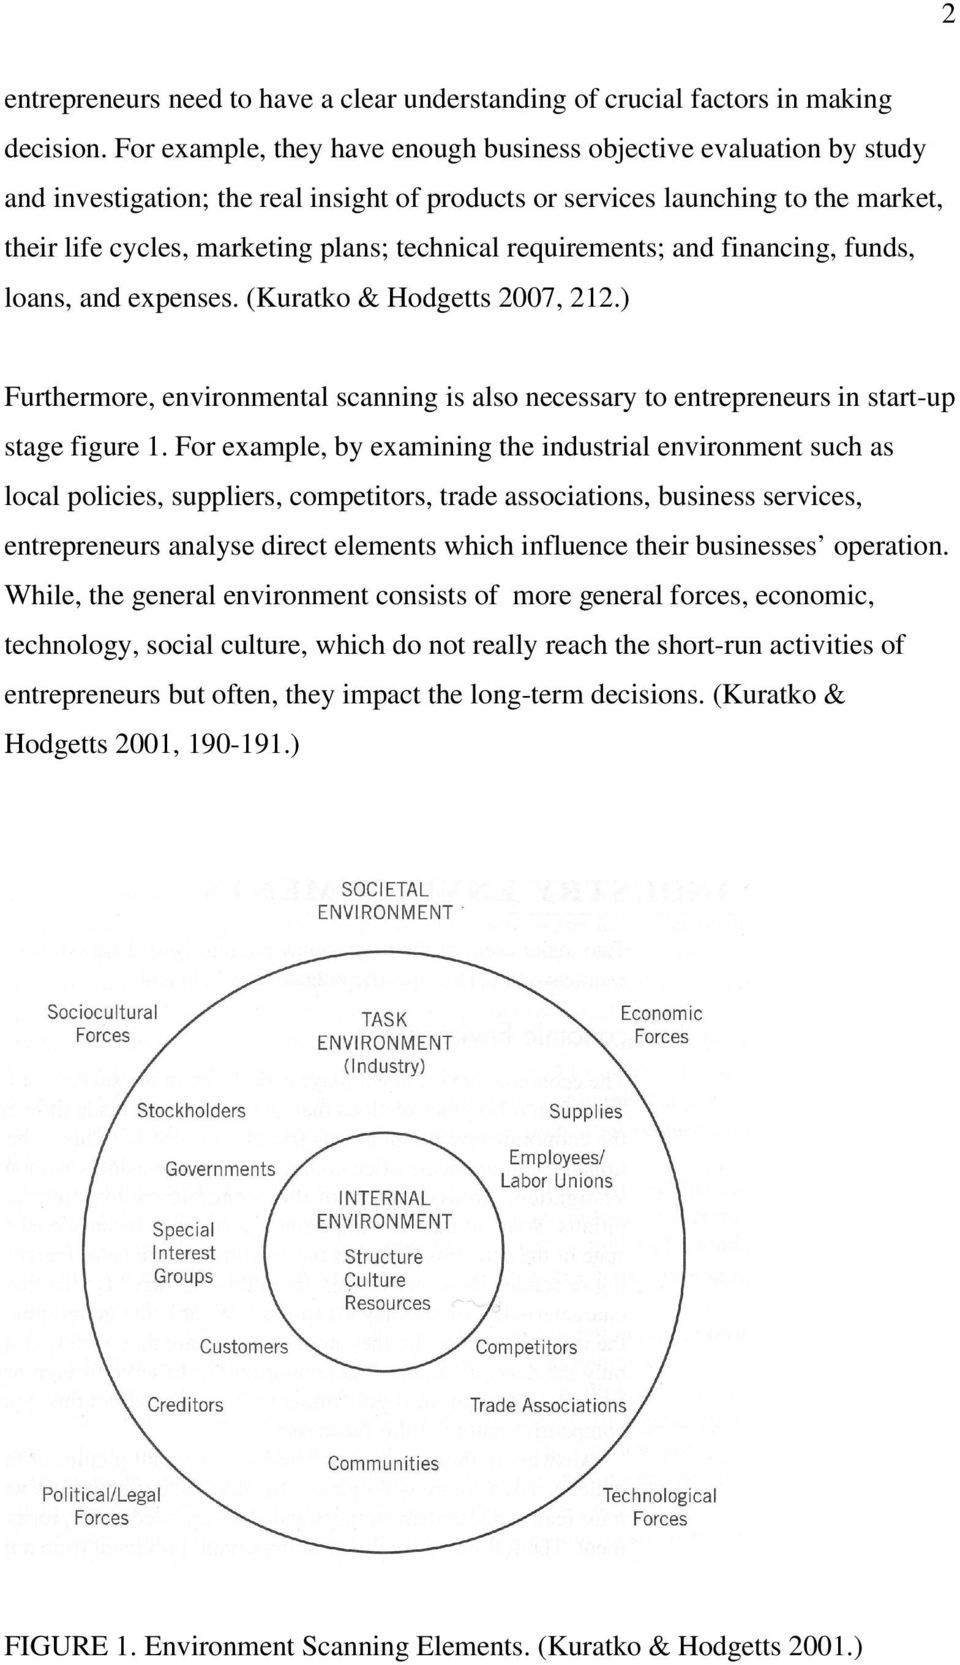 requirements; and financing, funds, loans, and expenses. (Kuratko & Hodgetts 2007, 212.) Furthermore, environmental scanning is also necessary to entrepreneurs in start-up stage figure 1.